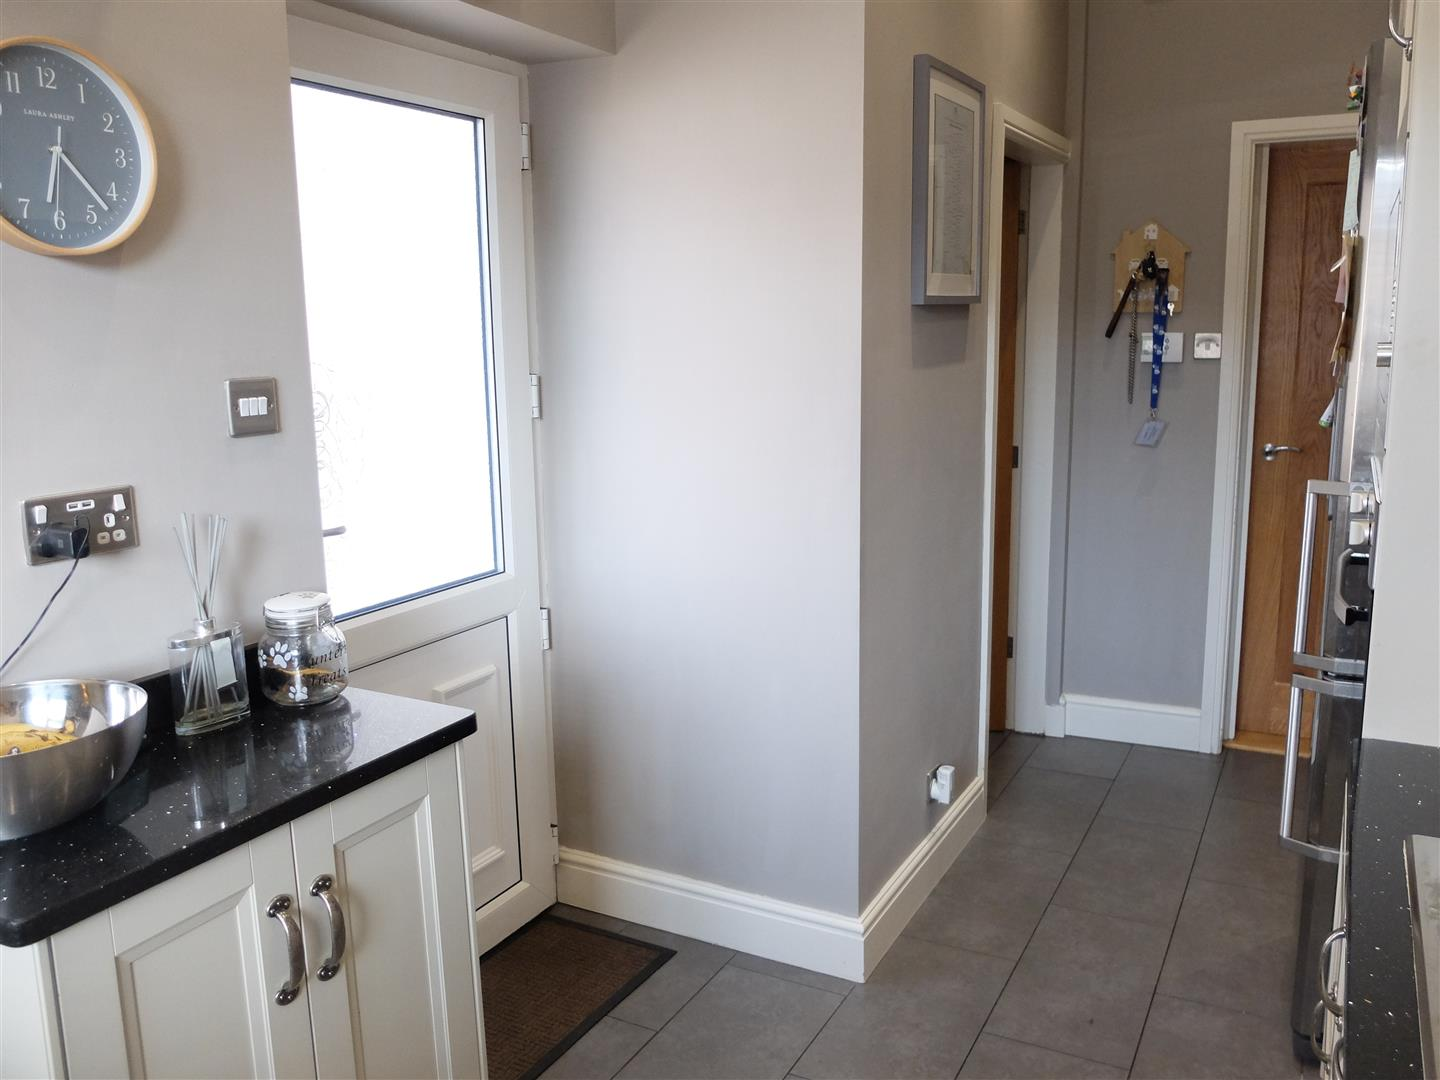 Home For Sale 7, Caledonian Buildings Etterby Road Carlisle